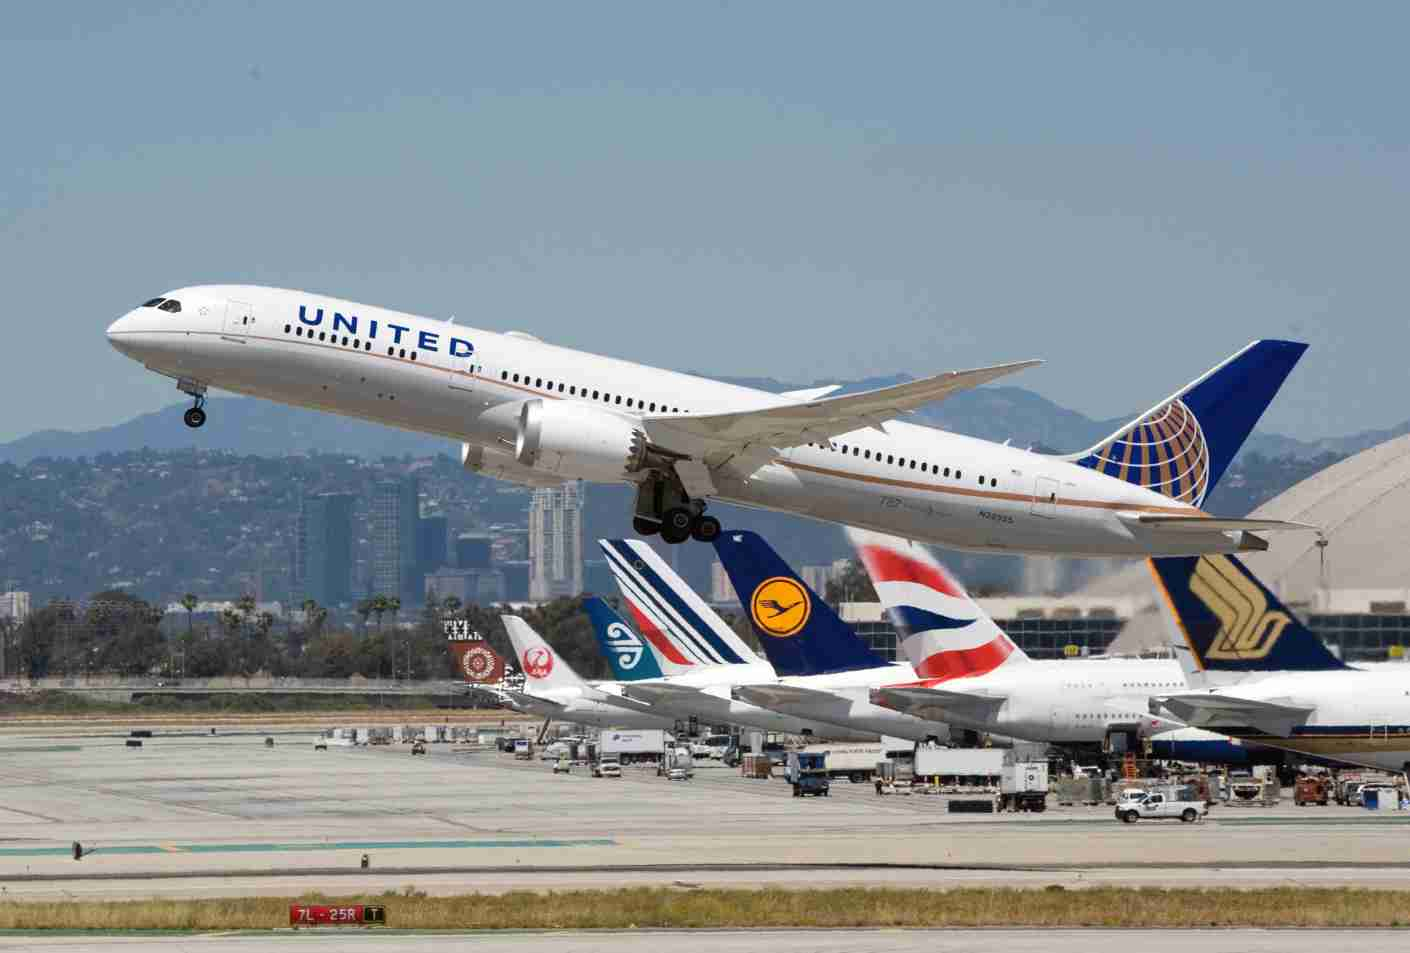 A United Airlines Boeing 787-9 takes off from LAX, April 2016